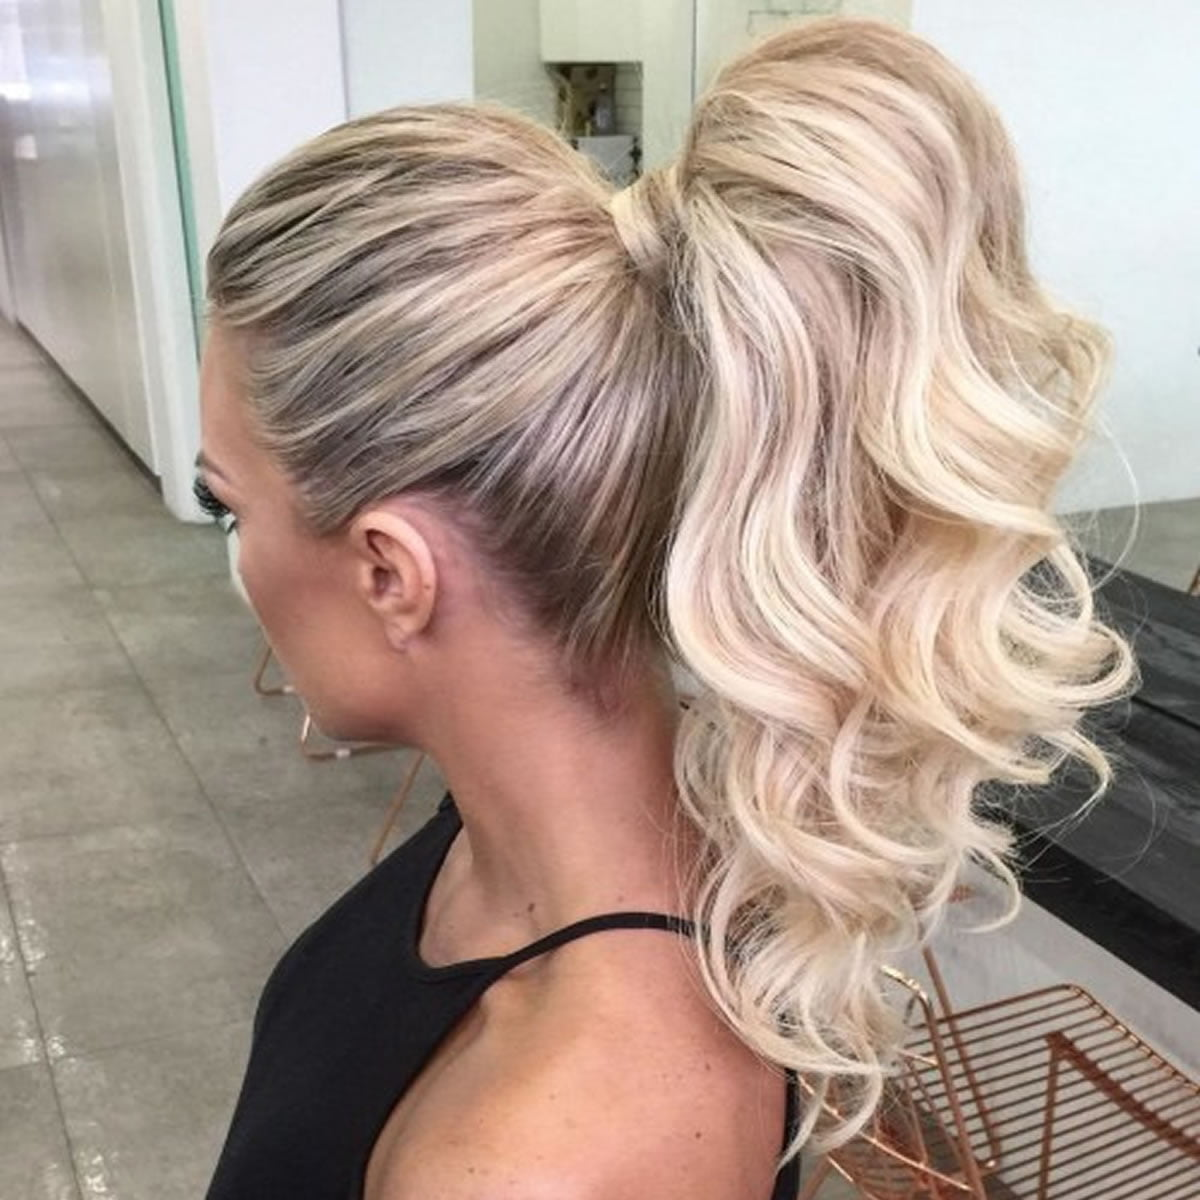 The 20 Most Attractive Ponytail Hairstyles for Women – HAIRSTYLES